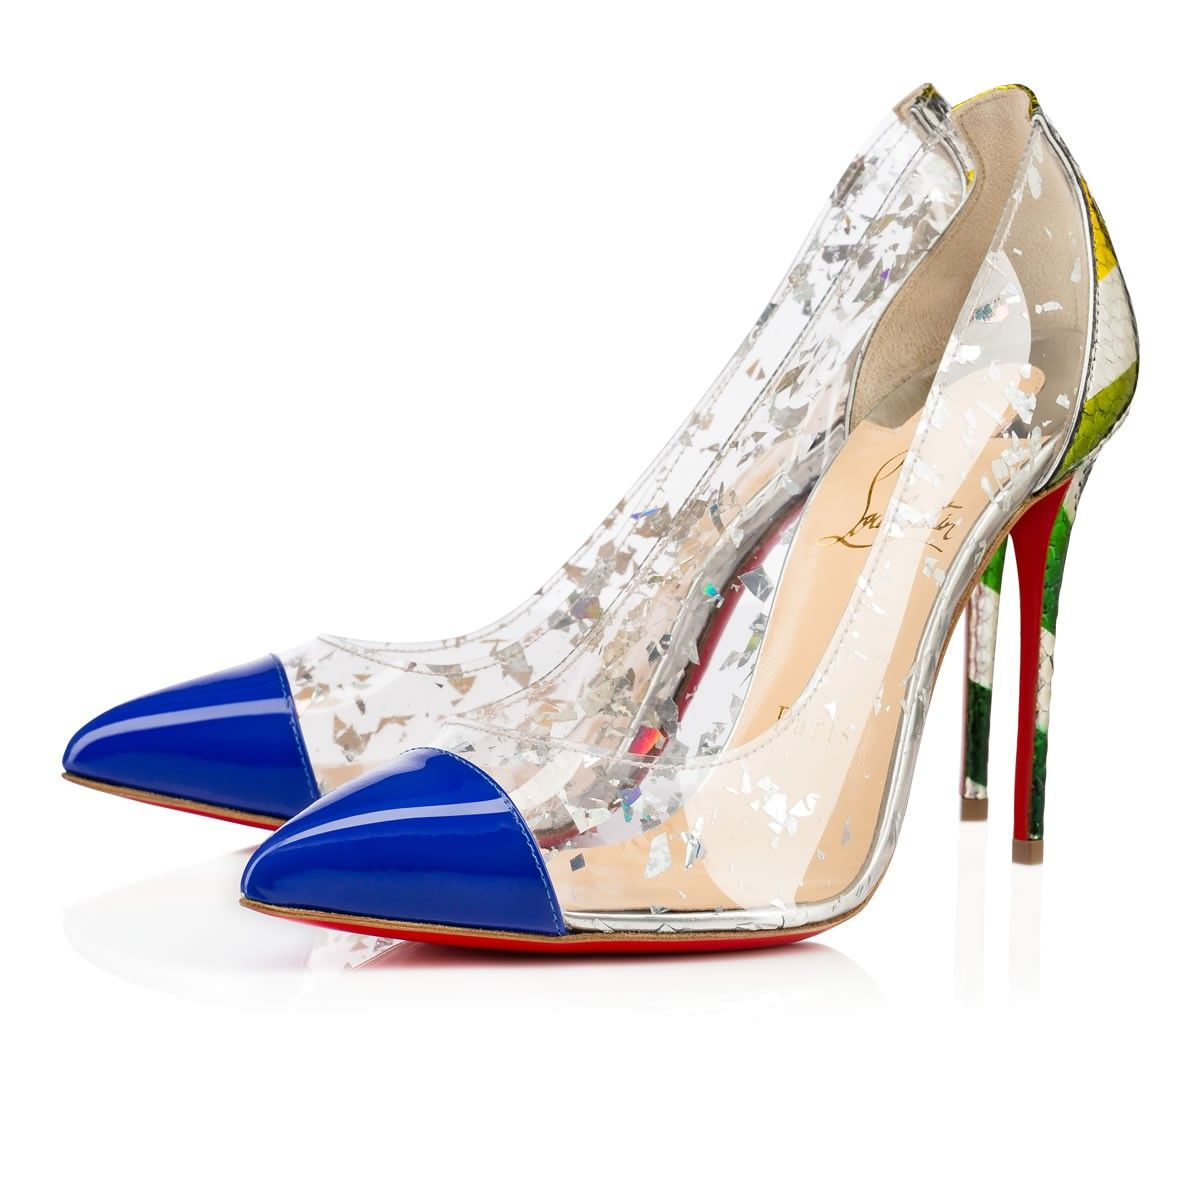 63c4a26dbed christian louboutin bridal shoes blue sole sperry christian ...